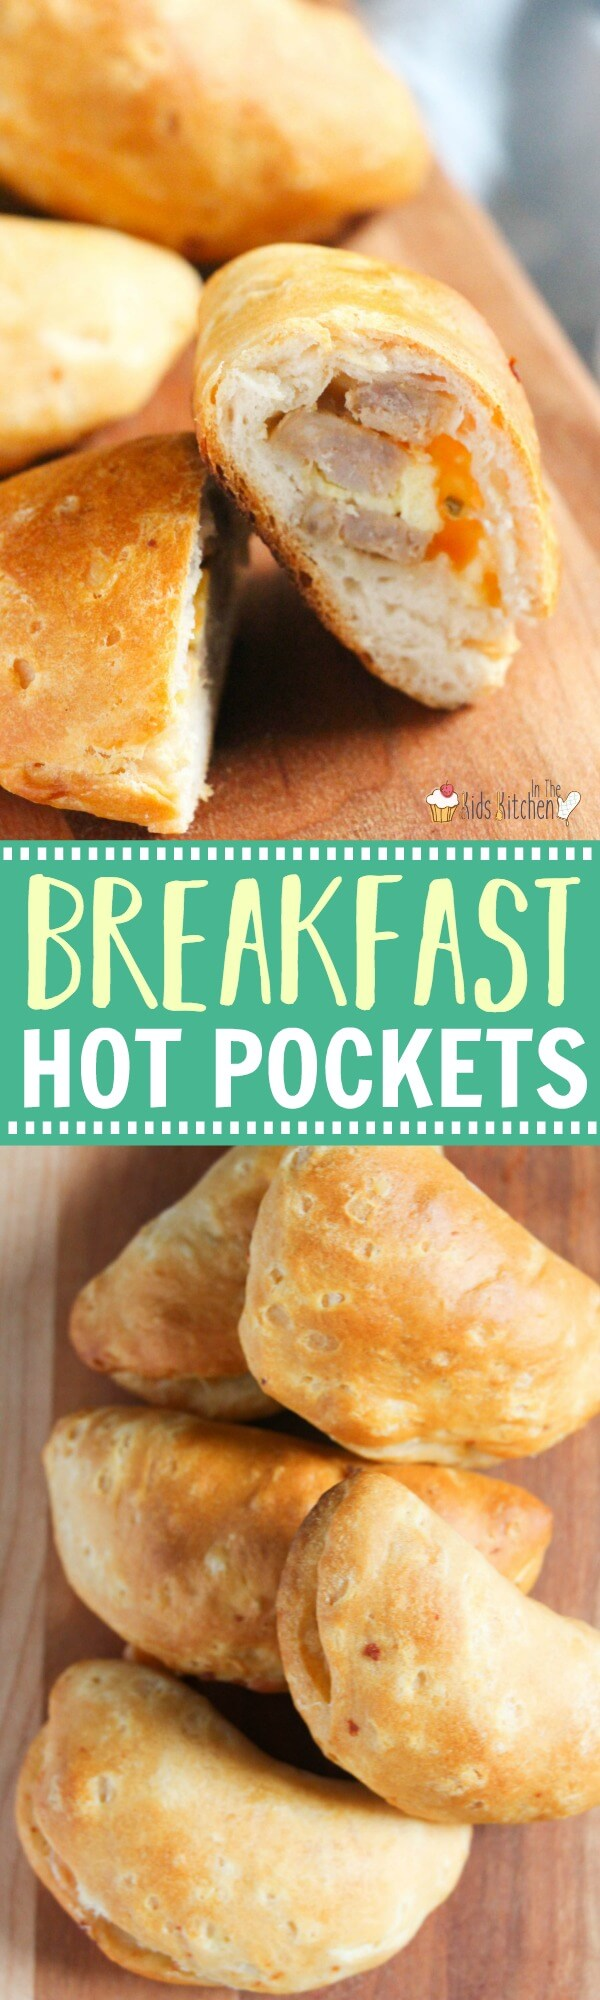 An easy make-ahead breakfast that kids will love! Sausage & Egg Breakfast Hot Pockets are perfect for on-the-go families to eat a wholesome morning meal and provide energy for hours! #breakfast #recipe